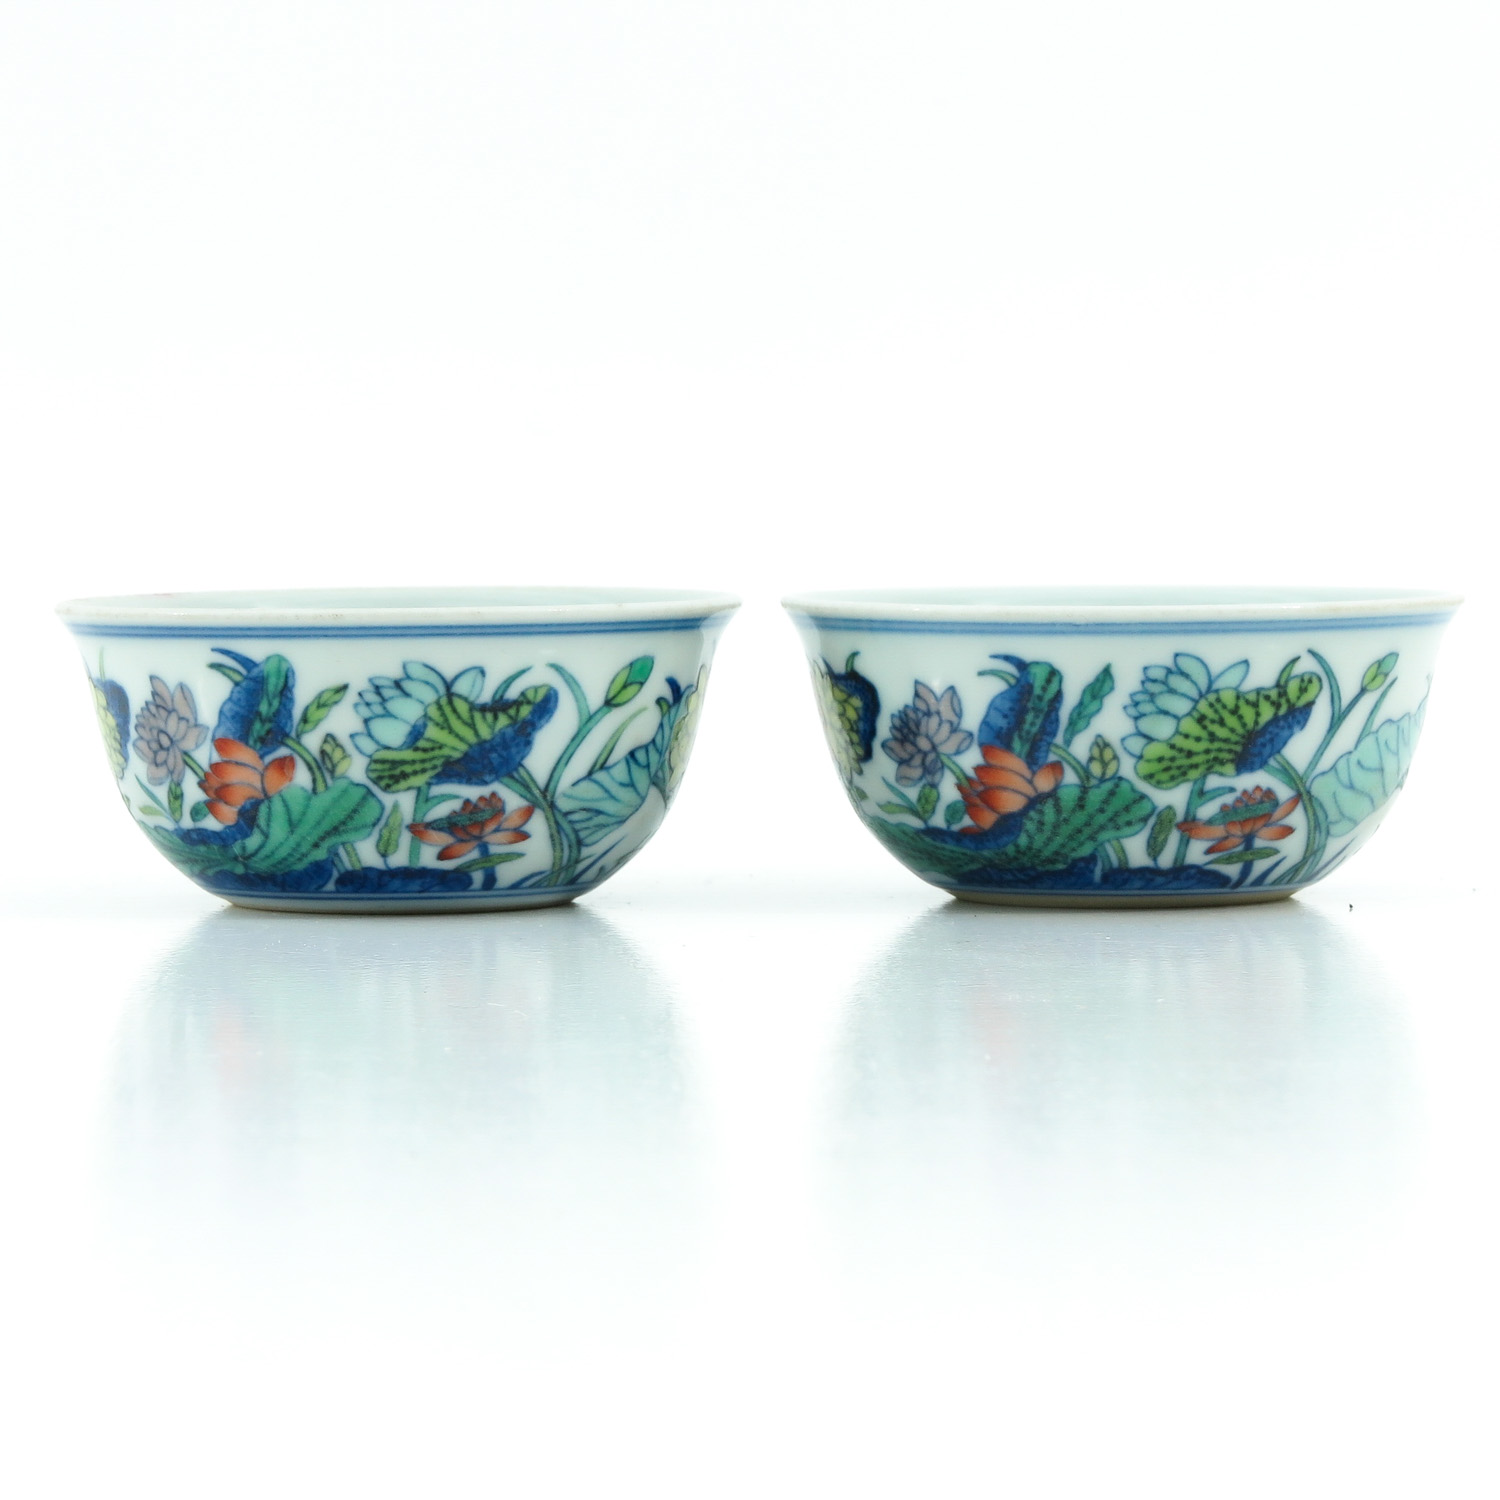 A Pair of Doucai Decor Cups